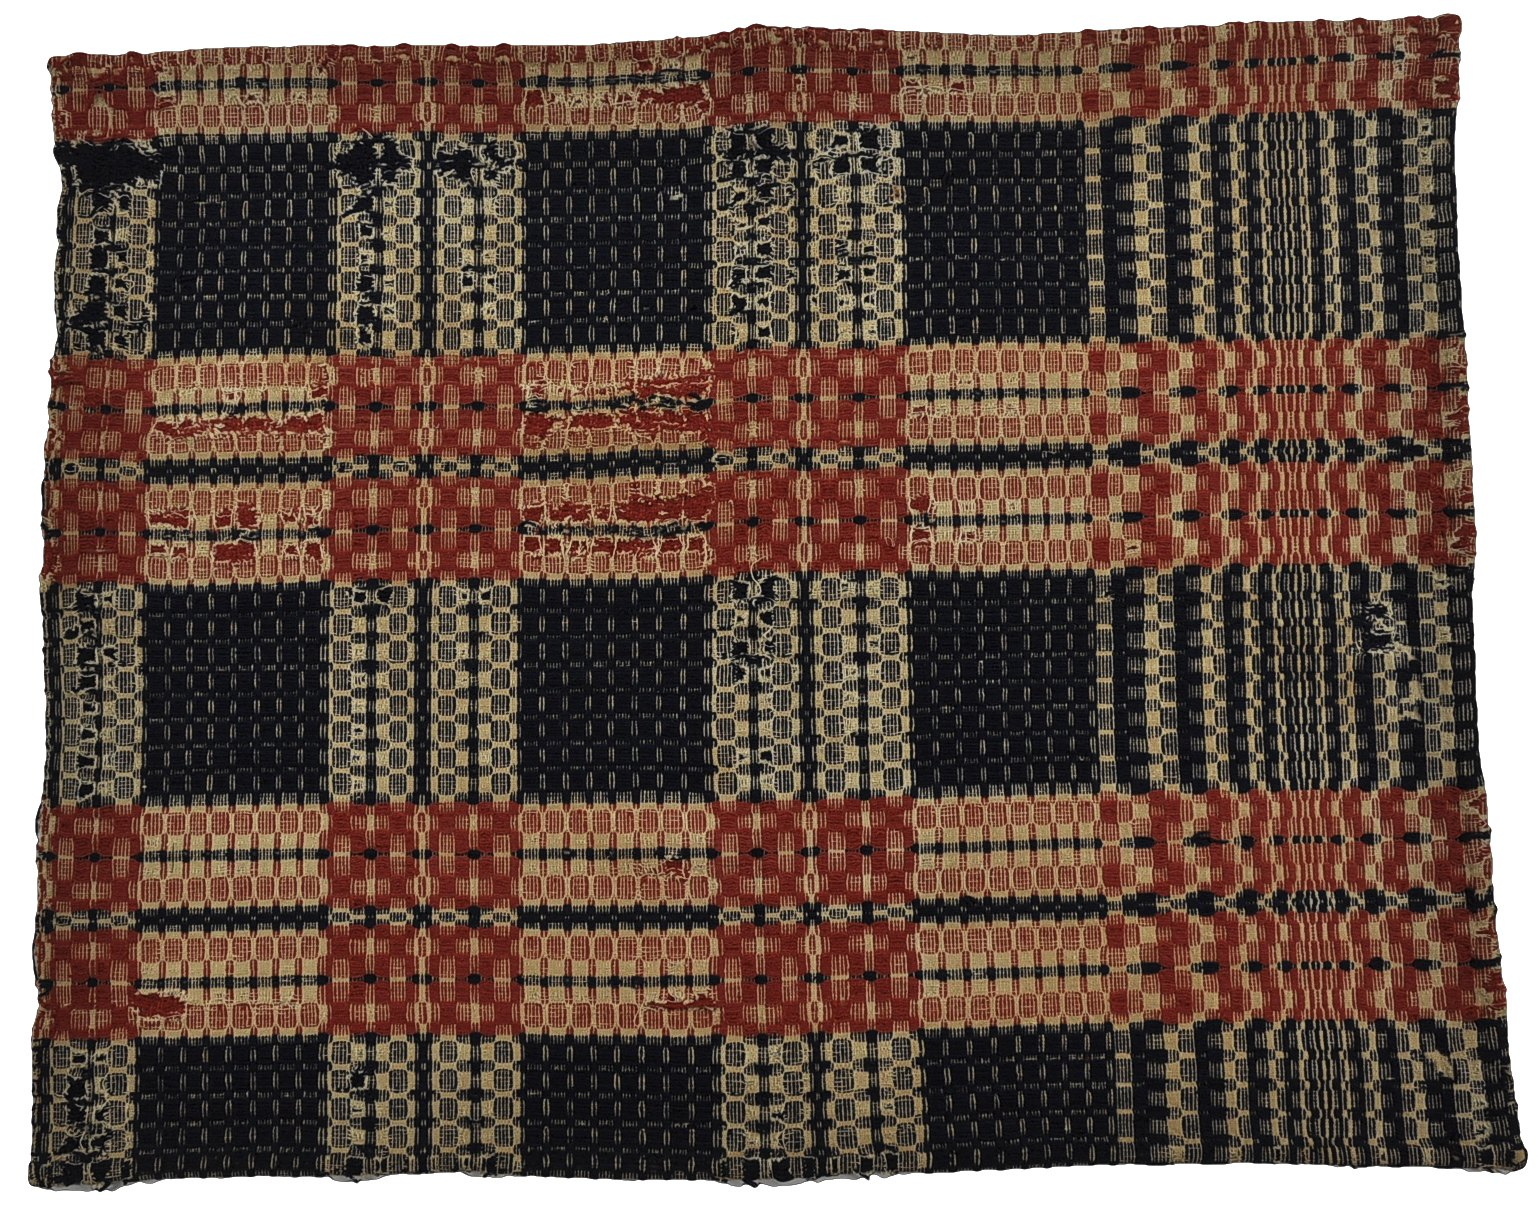 American Wool Coverlet, Ca. Early 19th Century